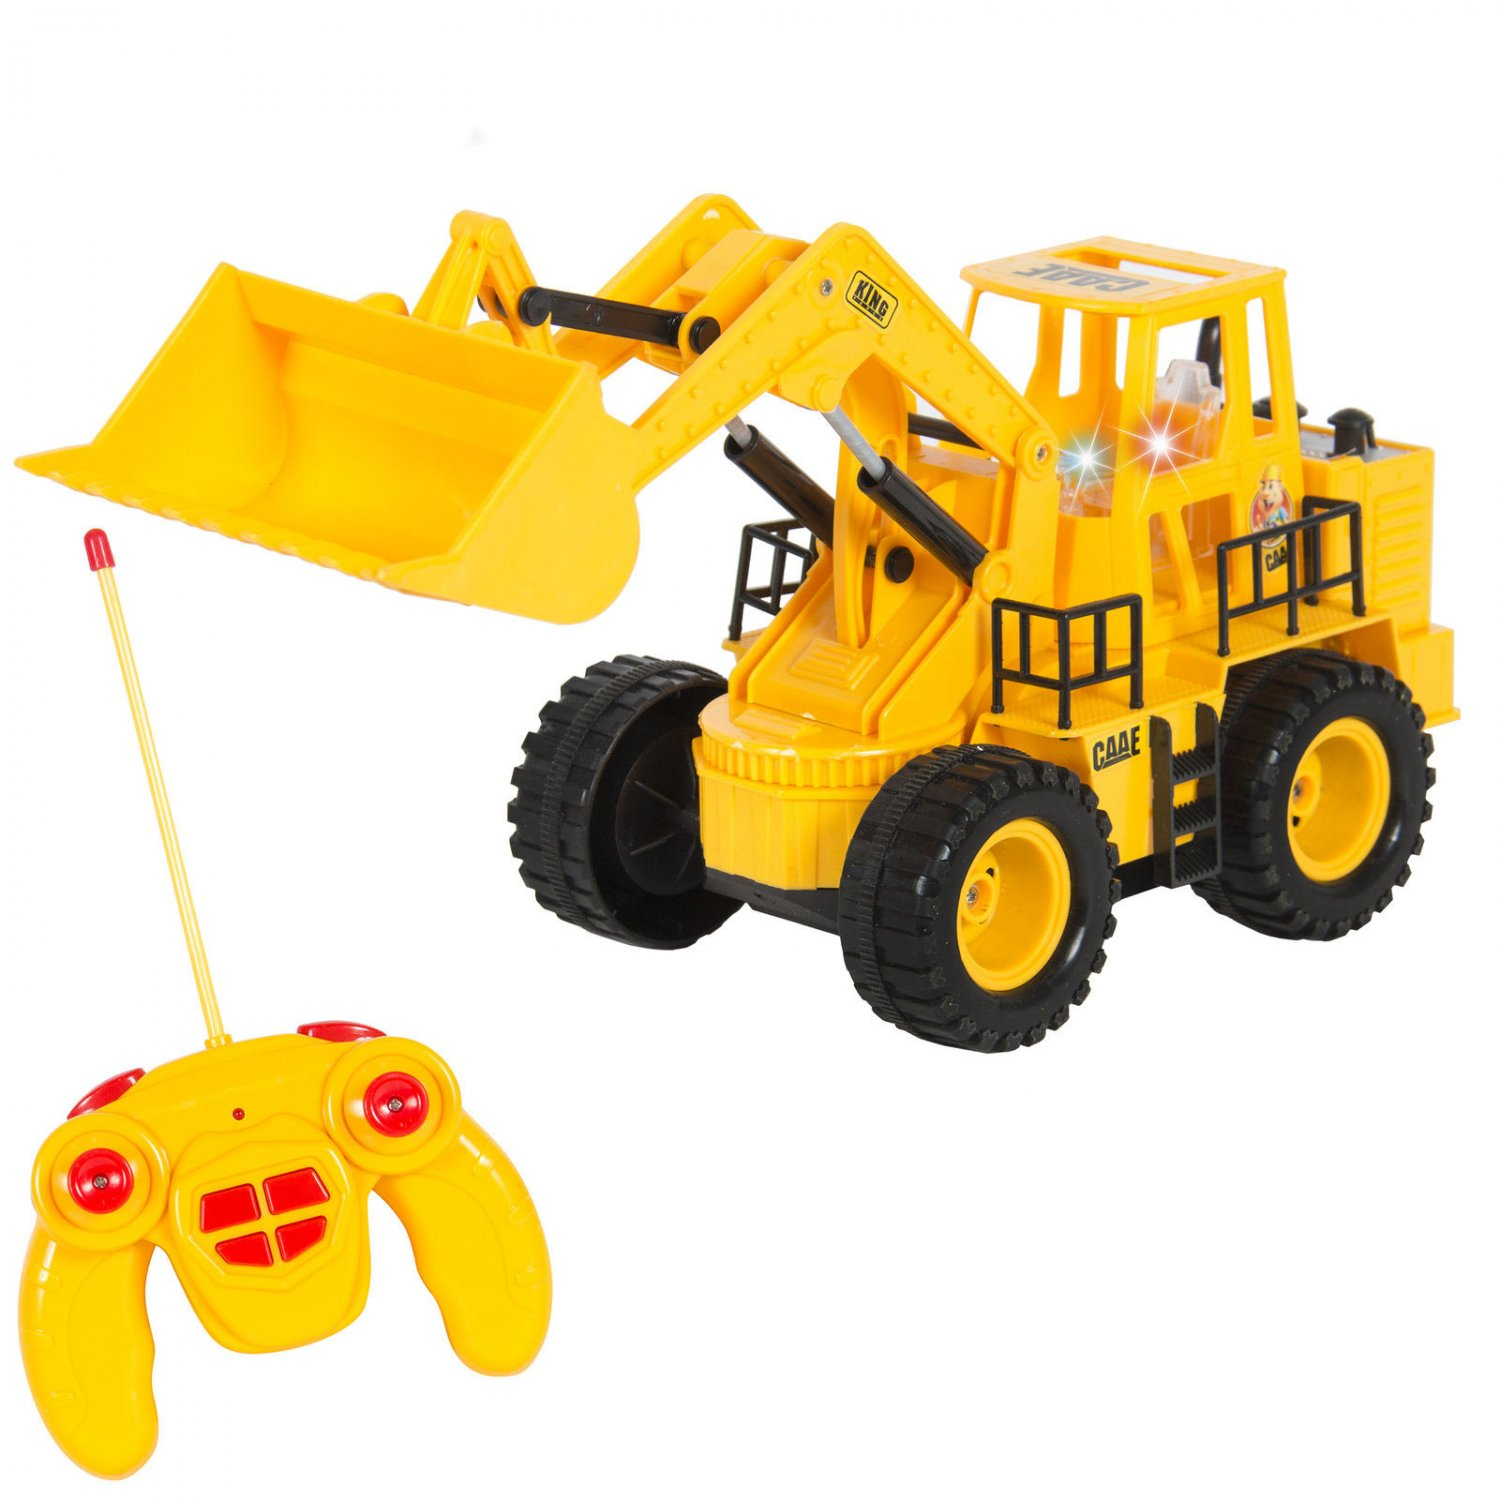 Remote Control Construction Toys : Rc remote control construction tractor with lights